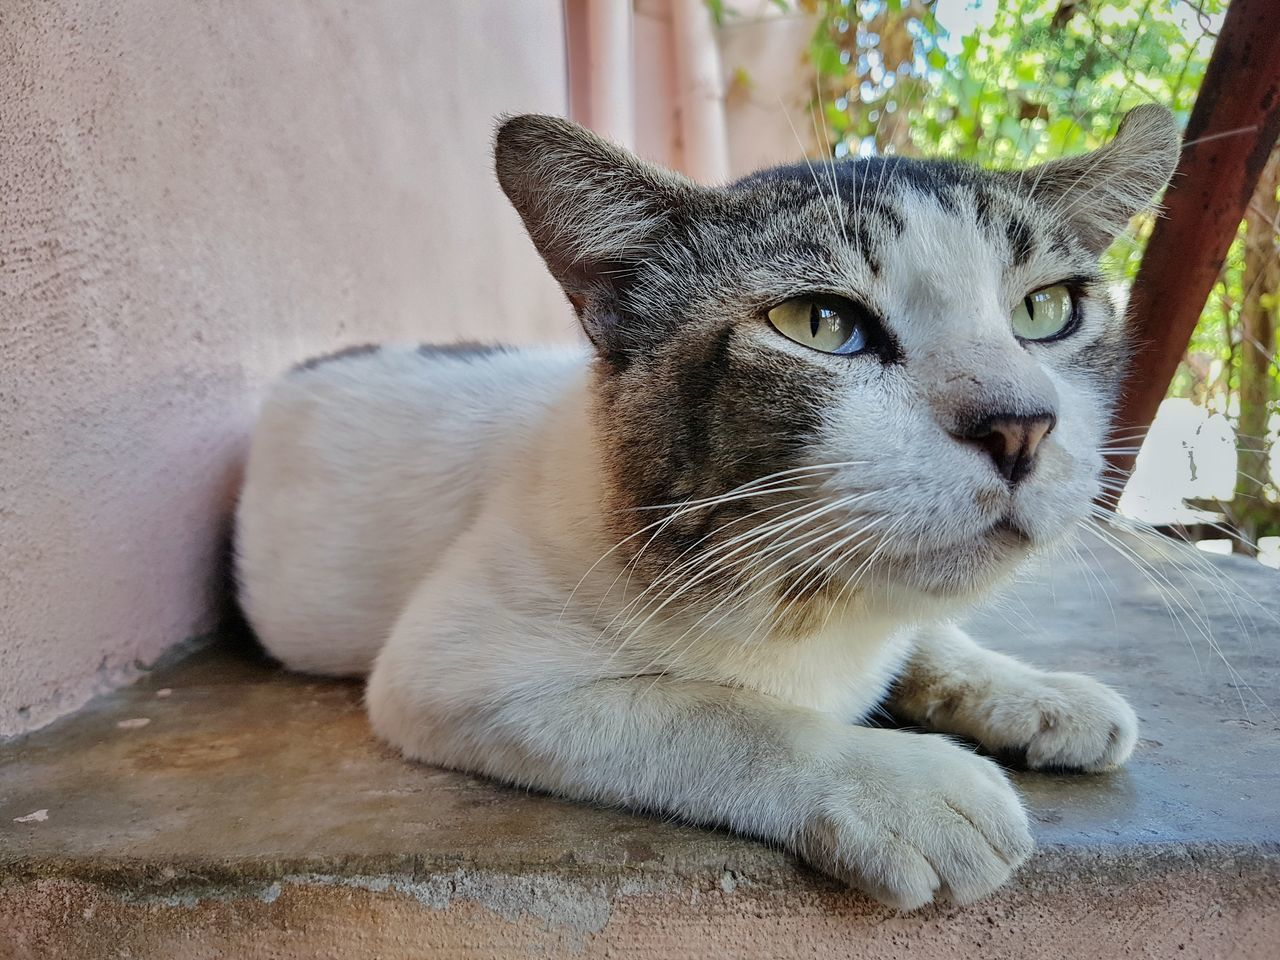 animal themes, one animal, domestic cat, mammal, pets, domestic animals, feline, portrait, whisker, looking at camera, day, sitting, no people, close-up, relaxation, outdoors